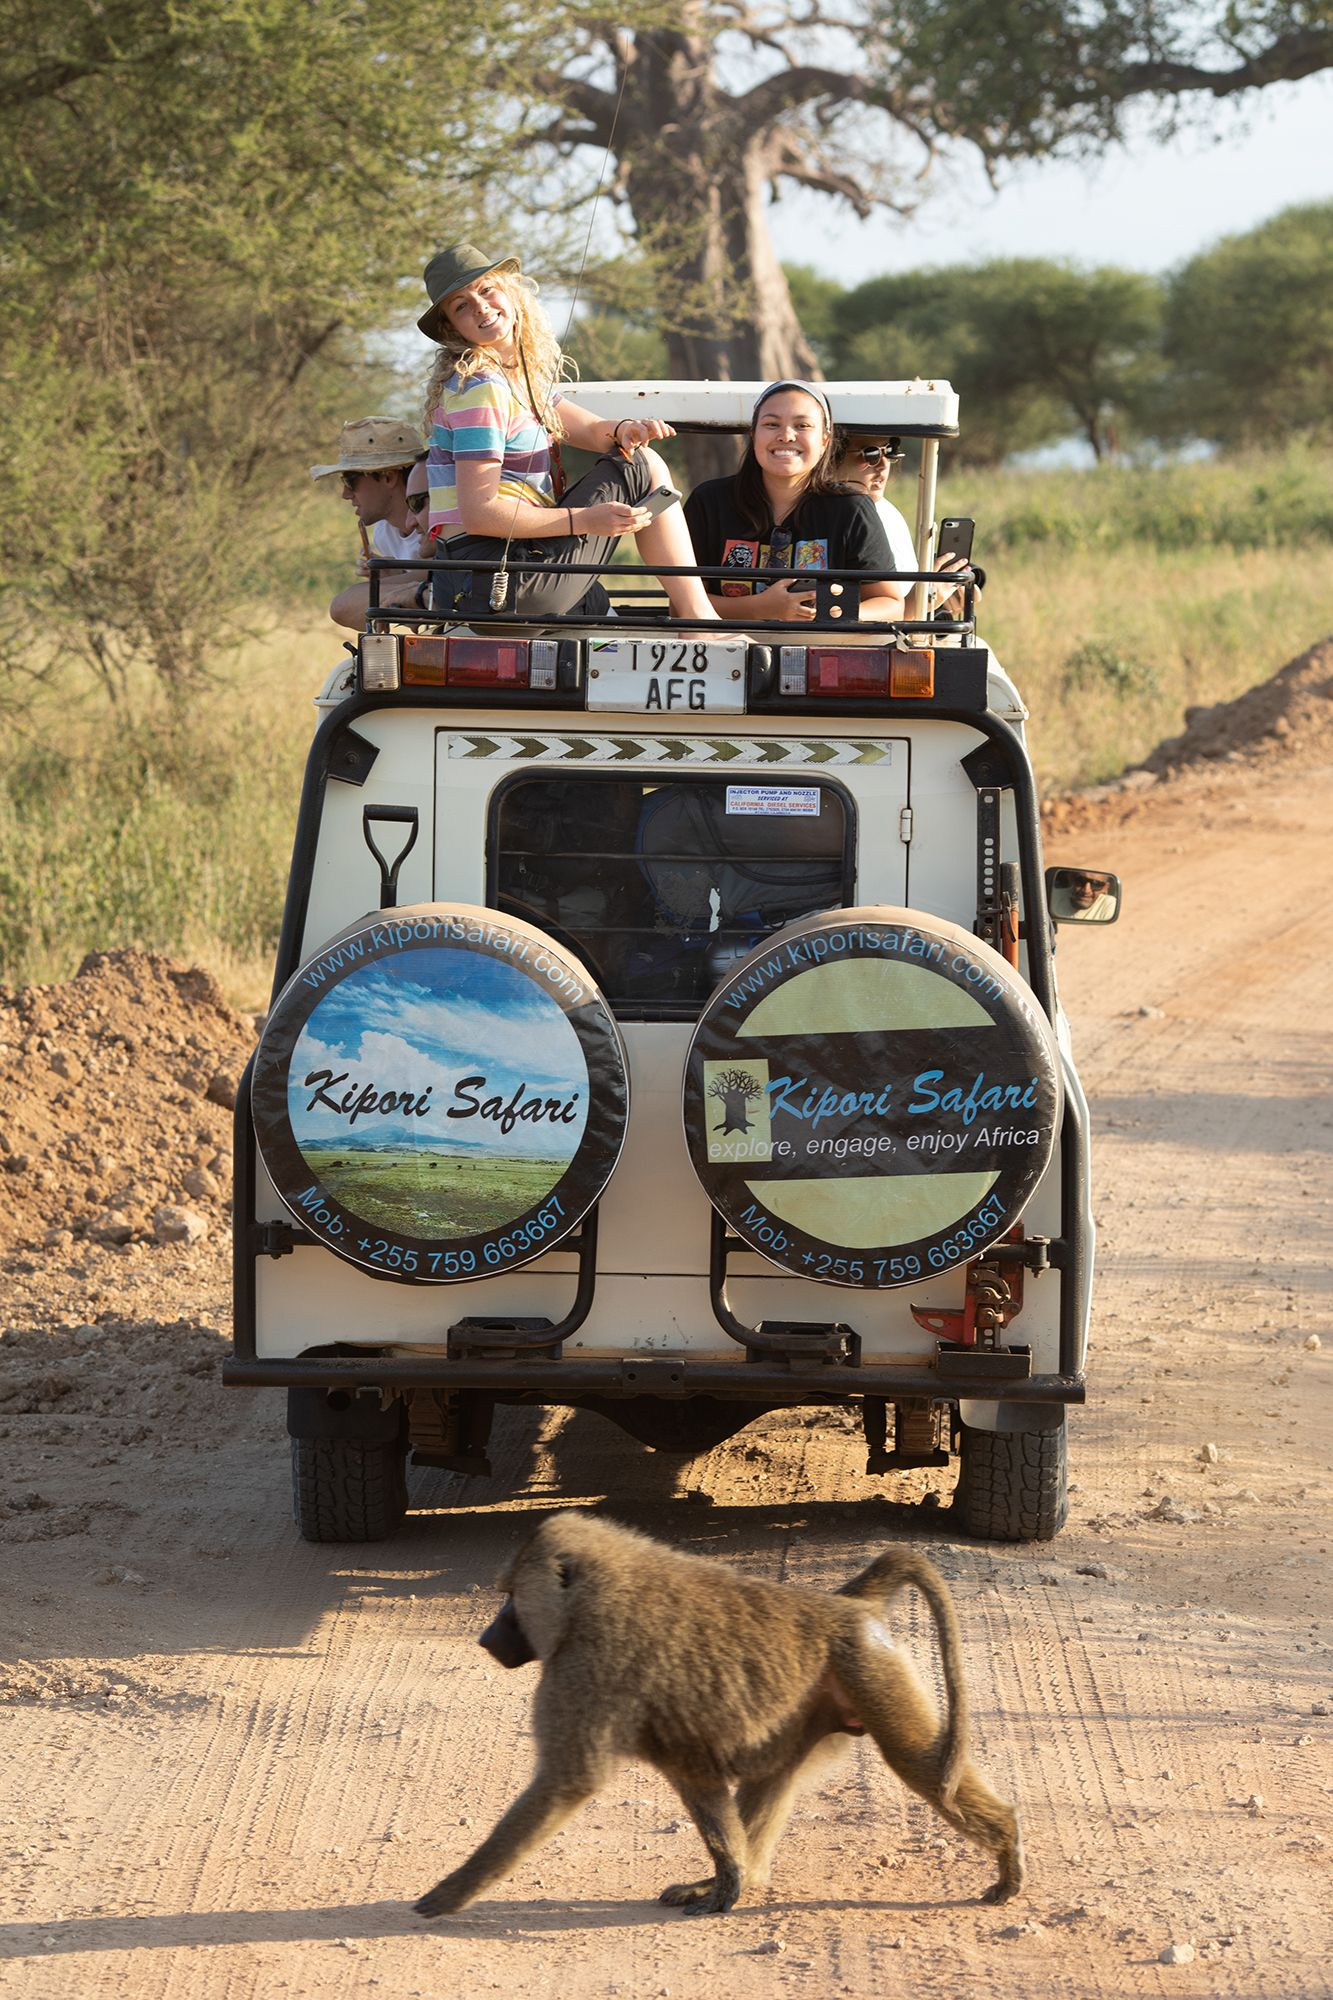 College students riding in the back of a truck during a safari while studying abroad.